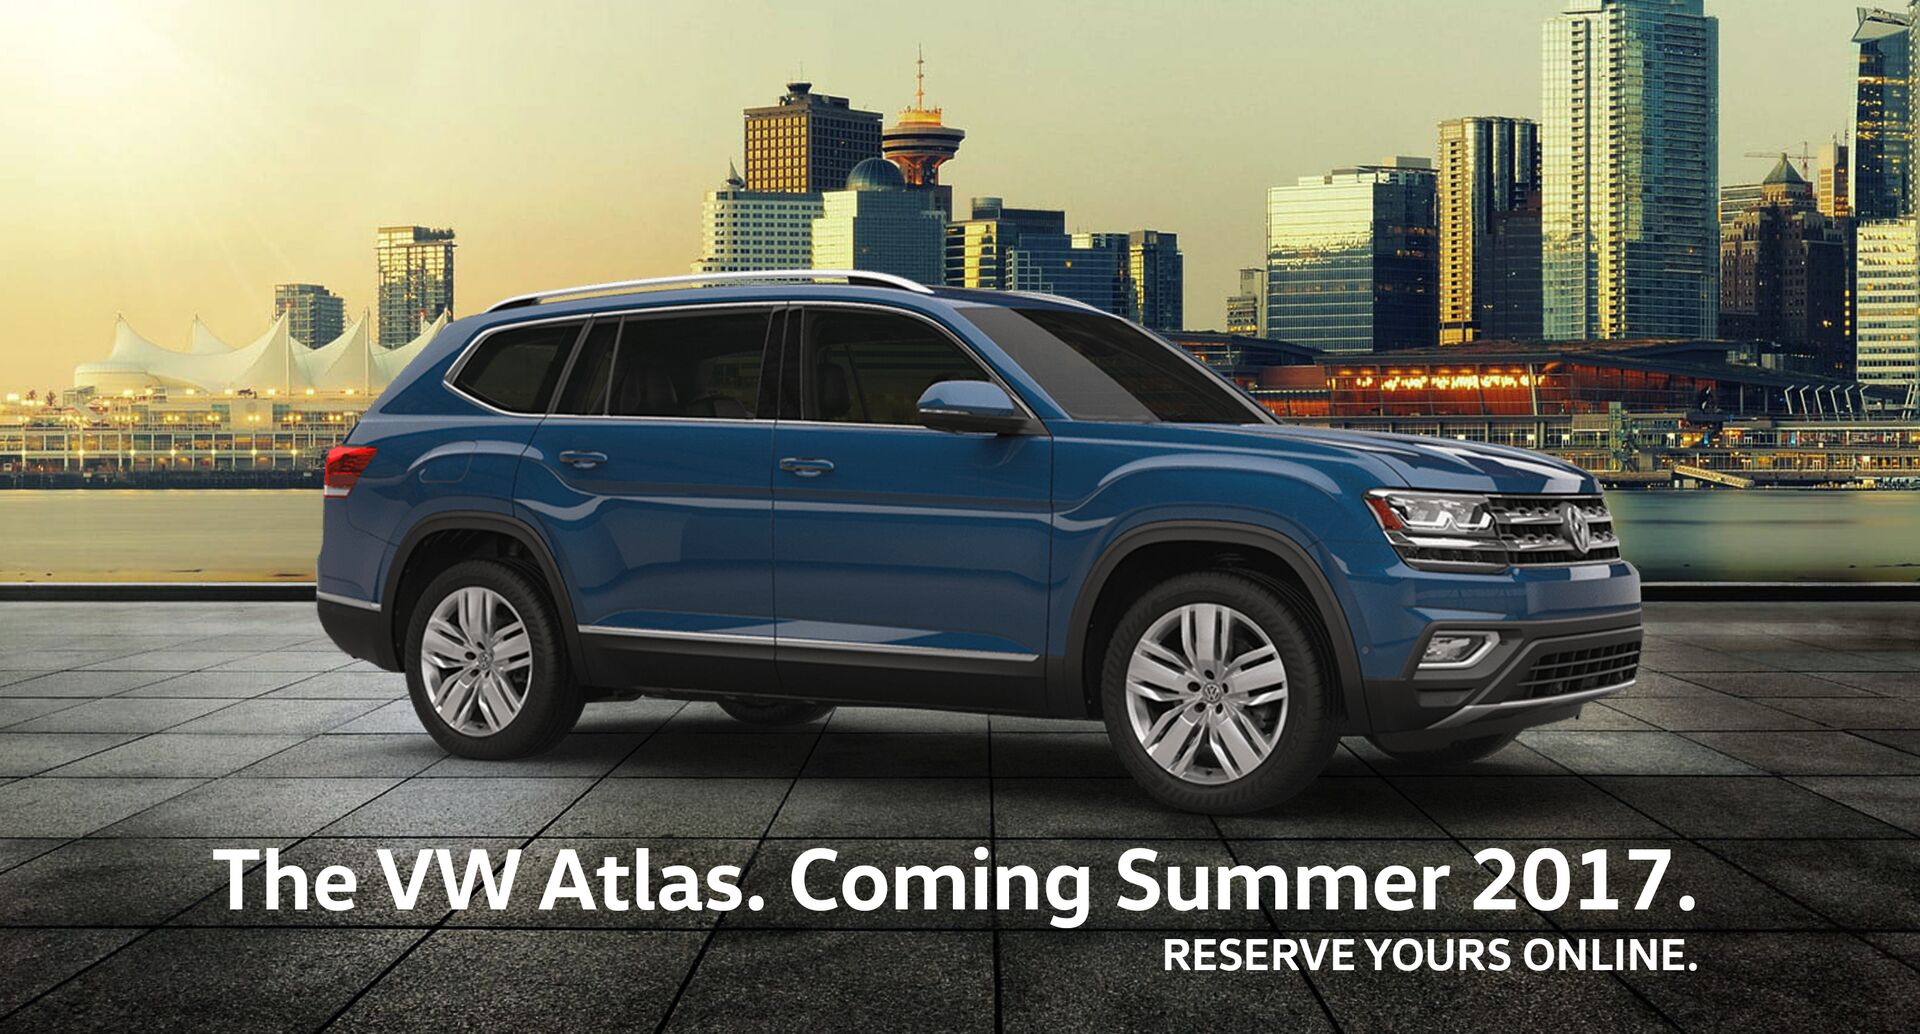 The VW Atlas is coming to Vancouver